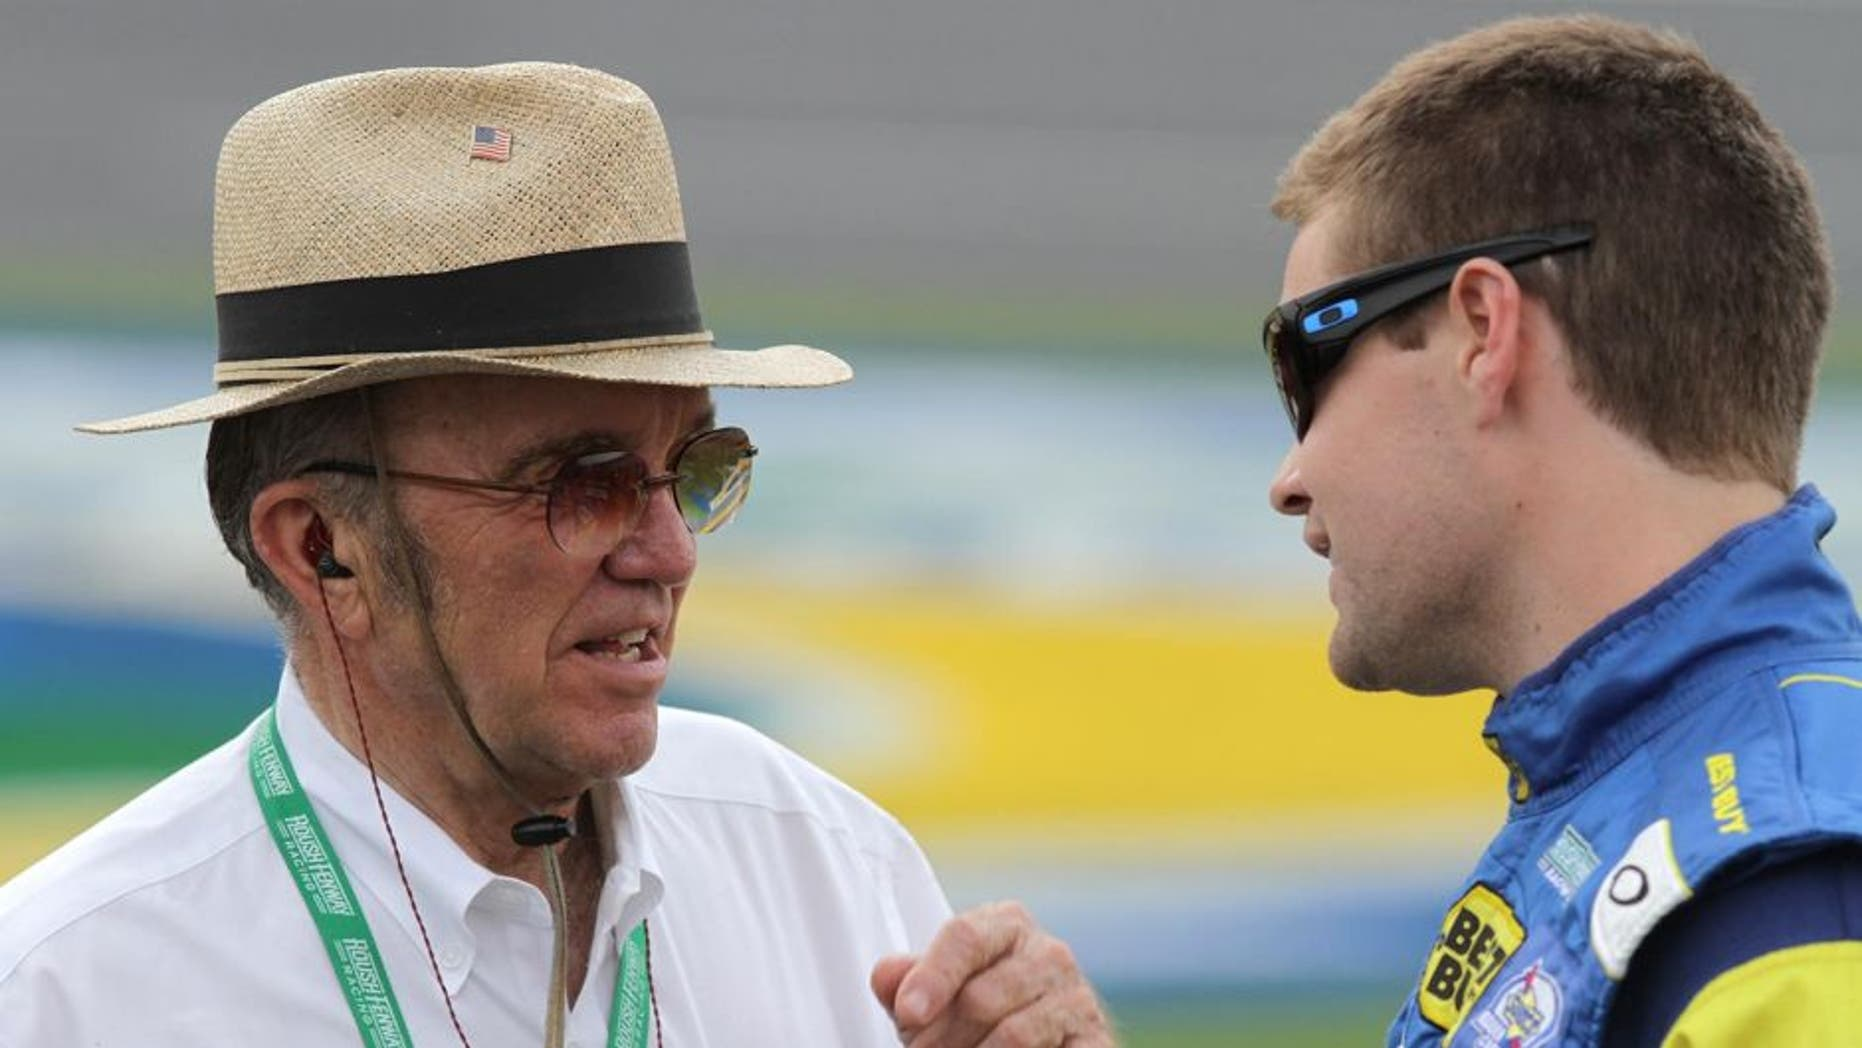 CONCORD, NC - MAY 17: Ricky Stenhouse Jr., driver of the #17 Best Buy Ford, talks to team owner Jack Roush on the grid during qualifying for the NASCAR Sprint Cup Series Showdown at Charlotte Motor Speedway on May 17, 2013 in Concord, North Carolina. (Photo by Jerry Markland/Getty Images)